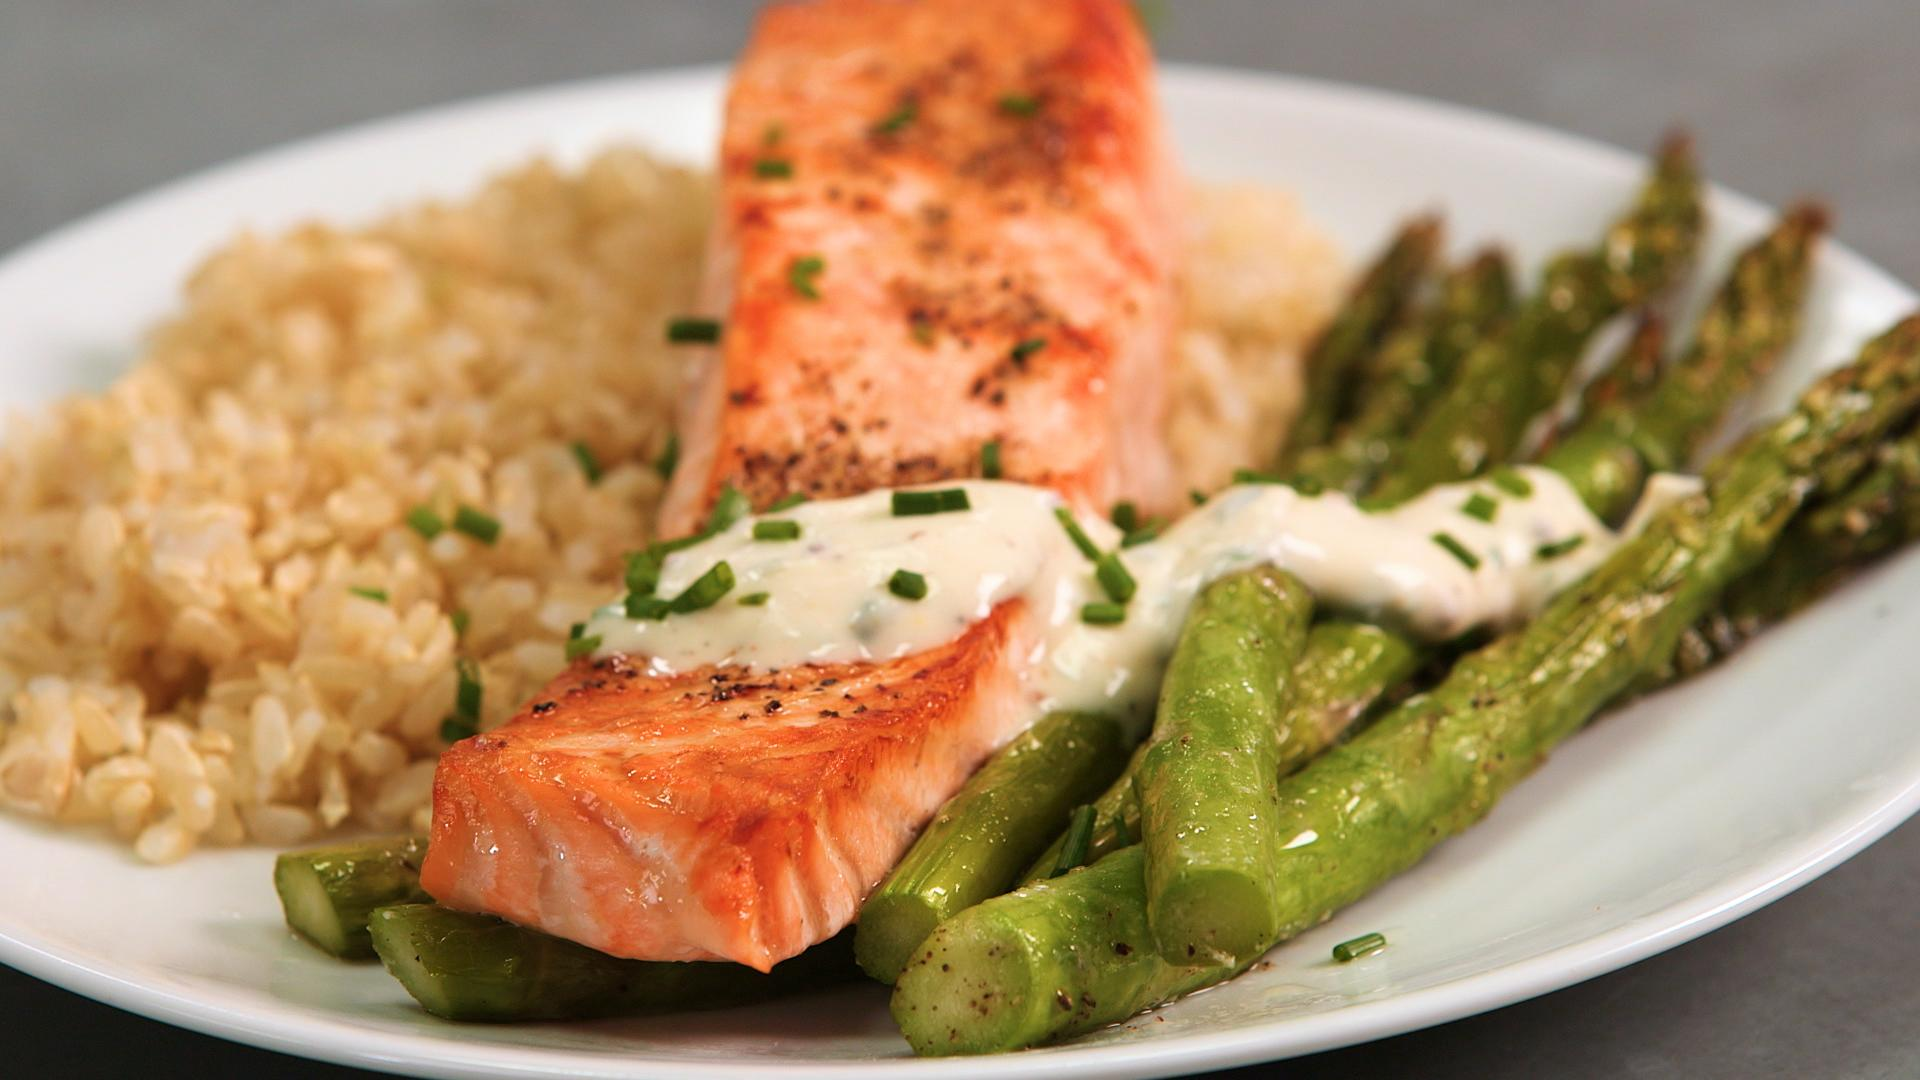 Can You Eat Too Much Healthy Fat? - Health